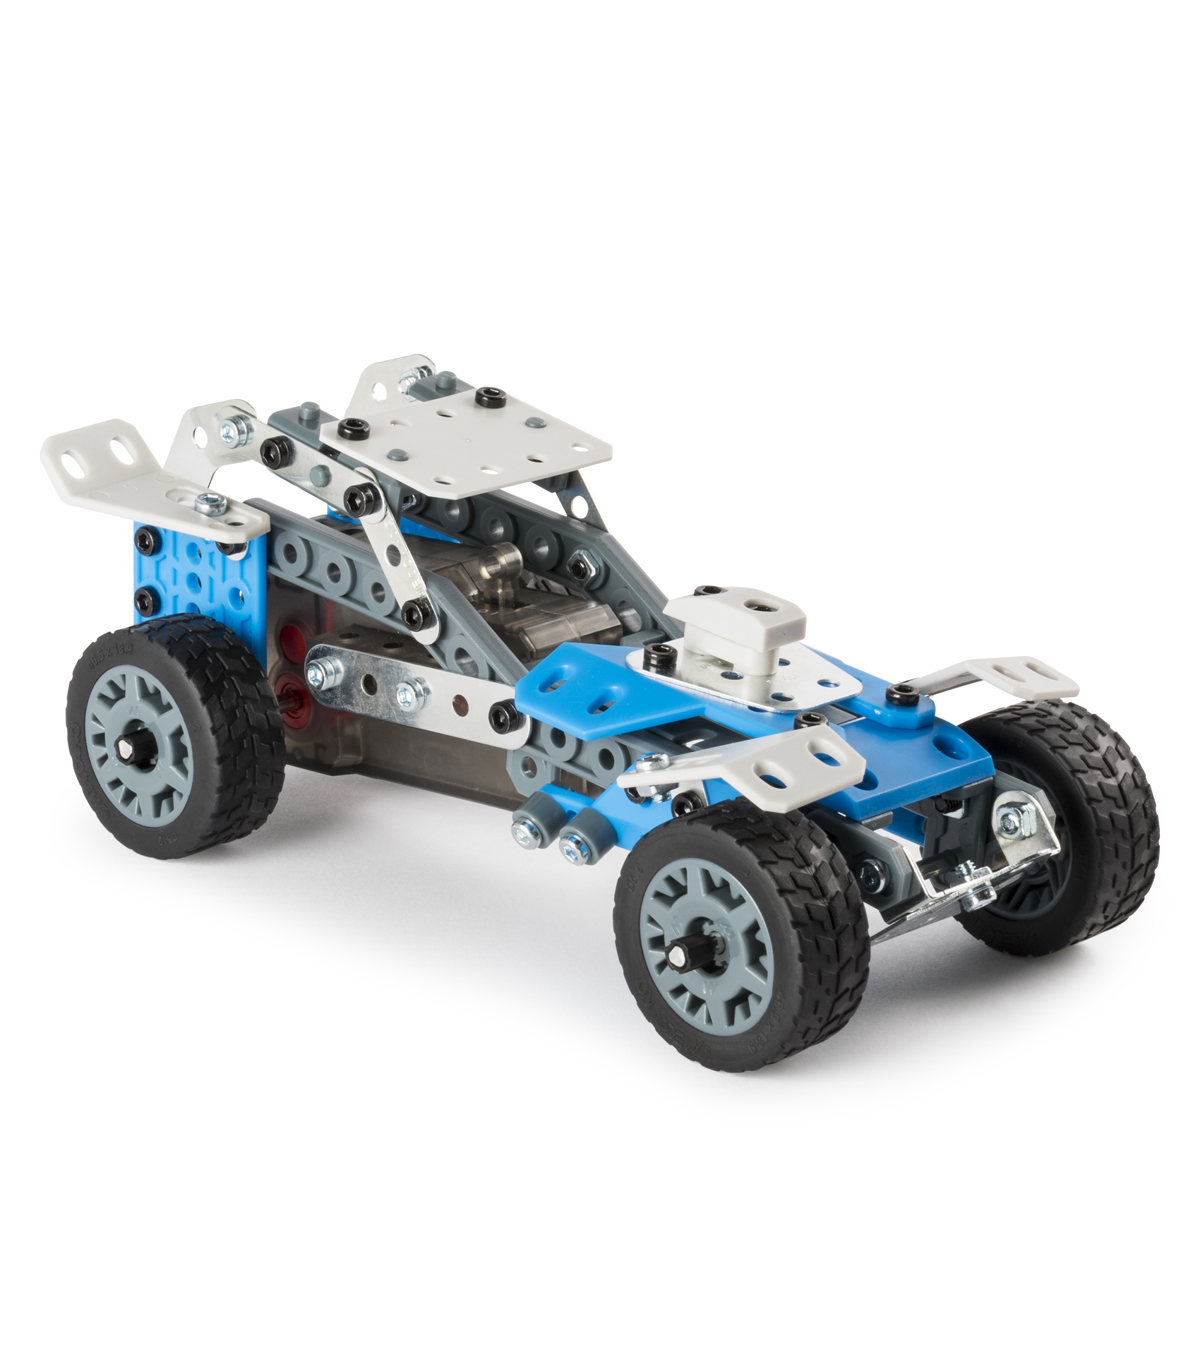 Meccano 10-in-1 Rally Racer Model Vehicle Building Kit